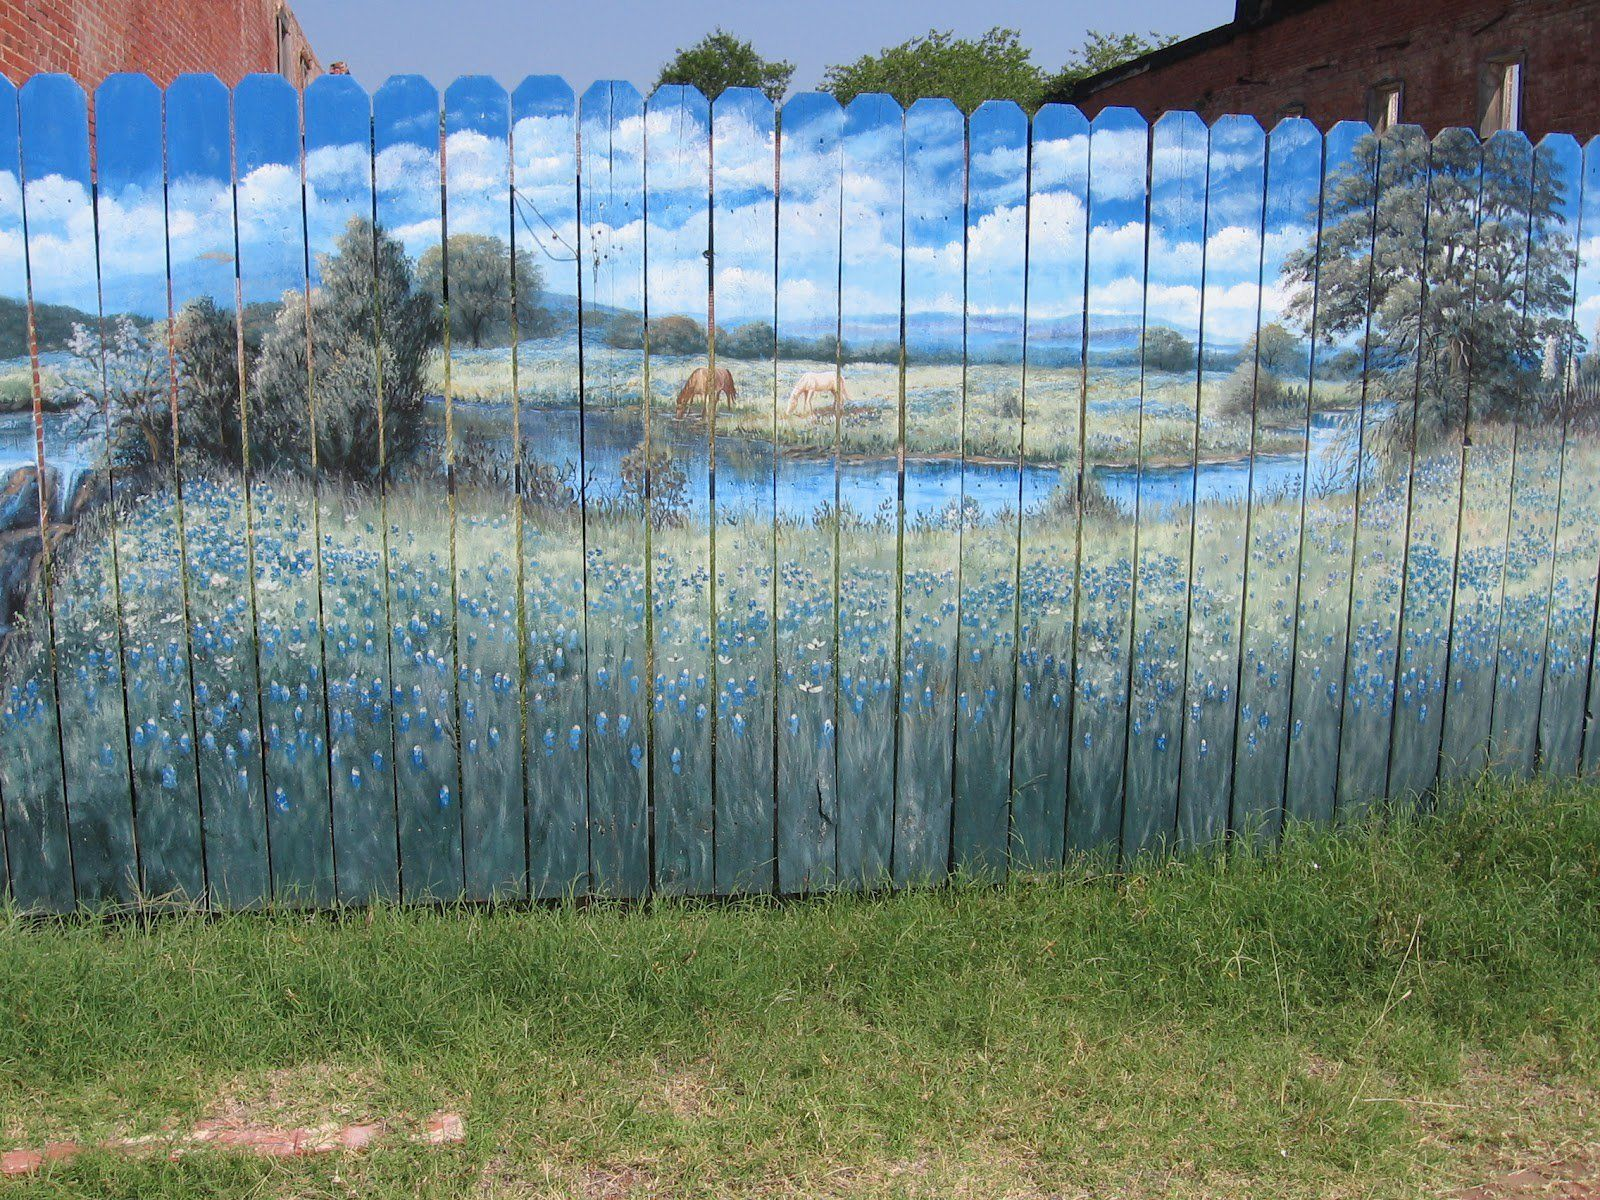 10 Ways To Make Your Fence Beautiful